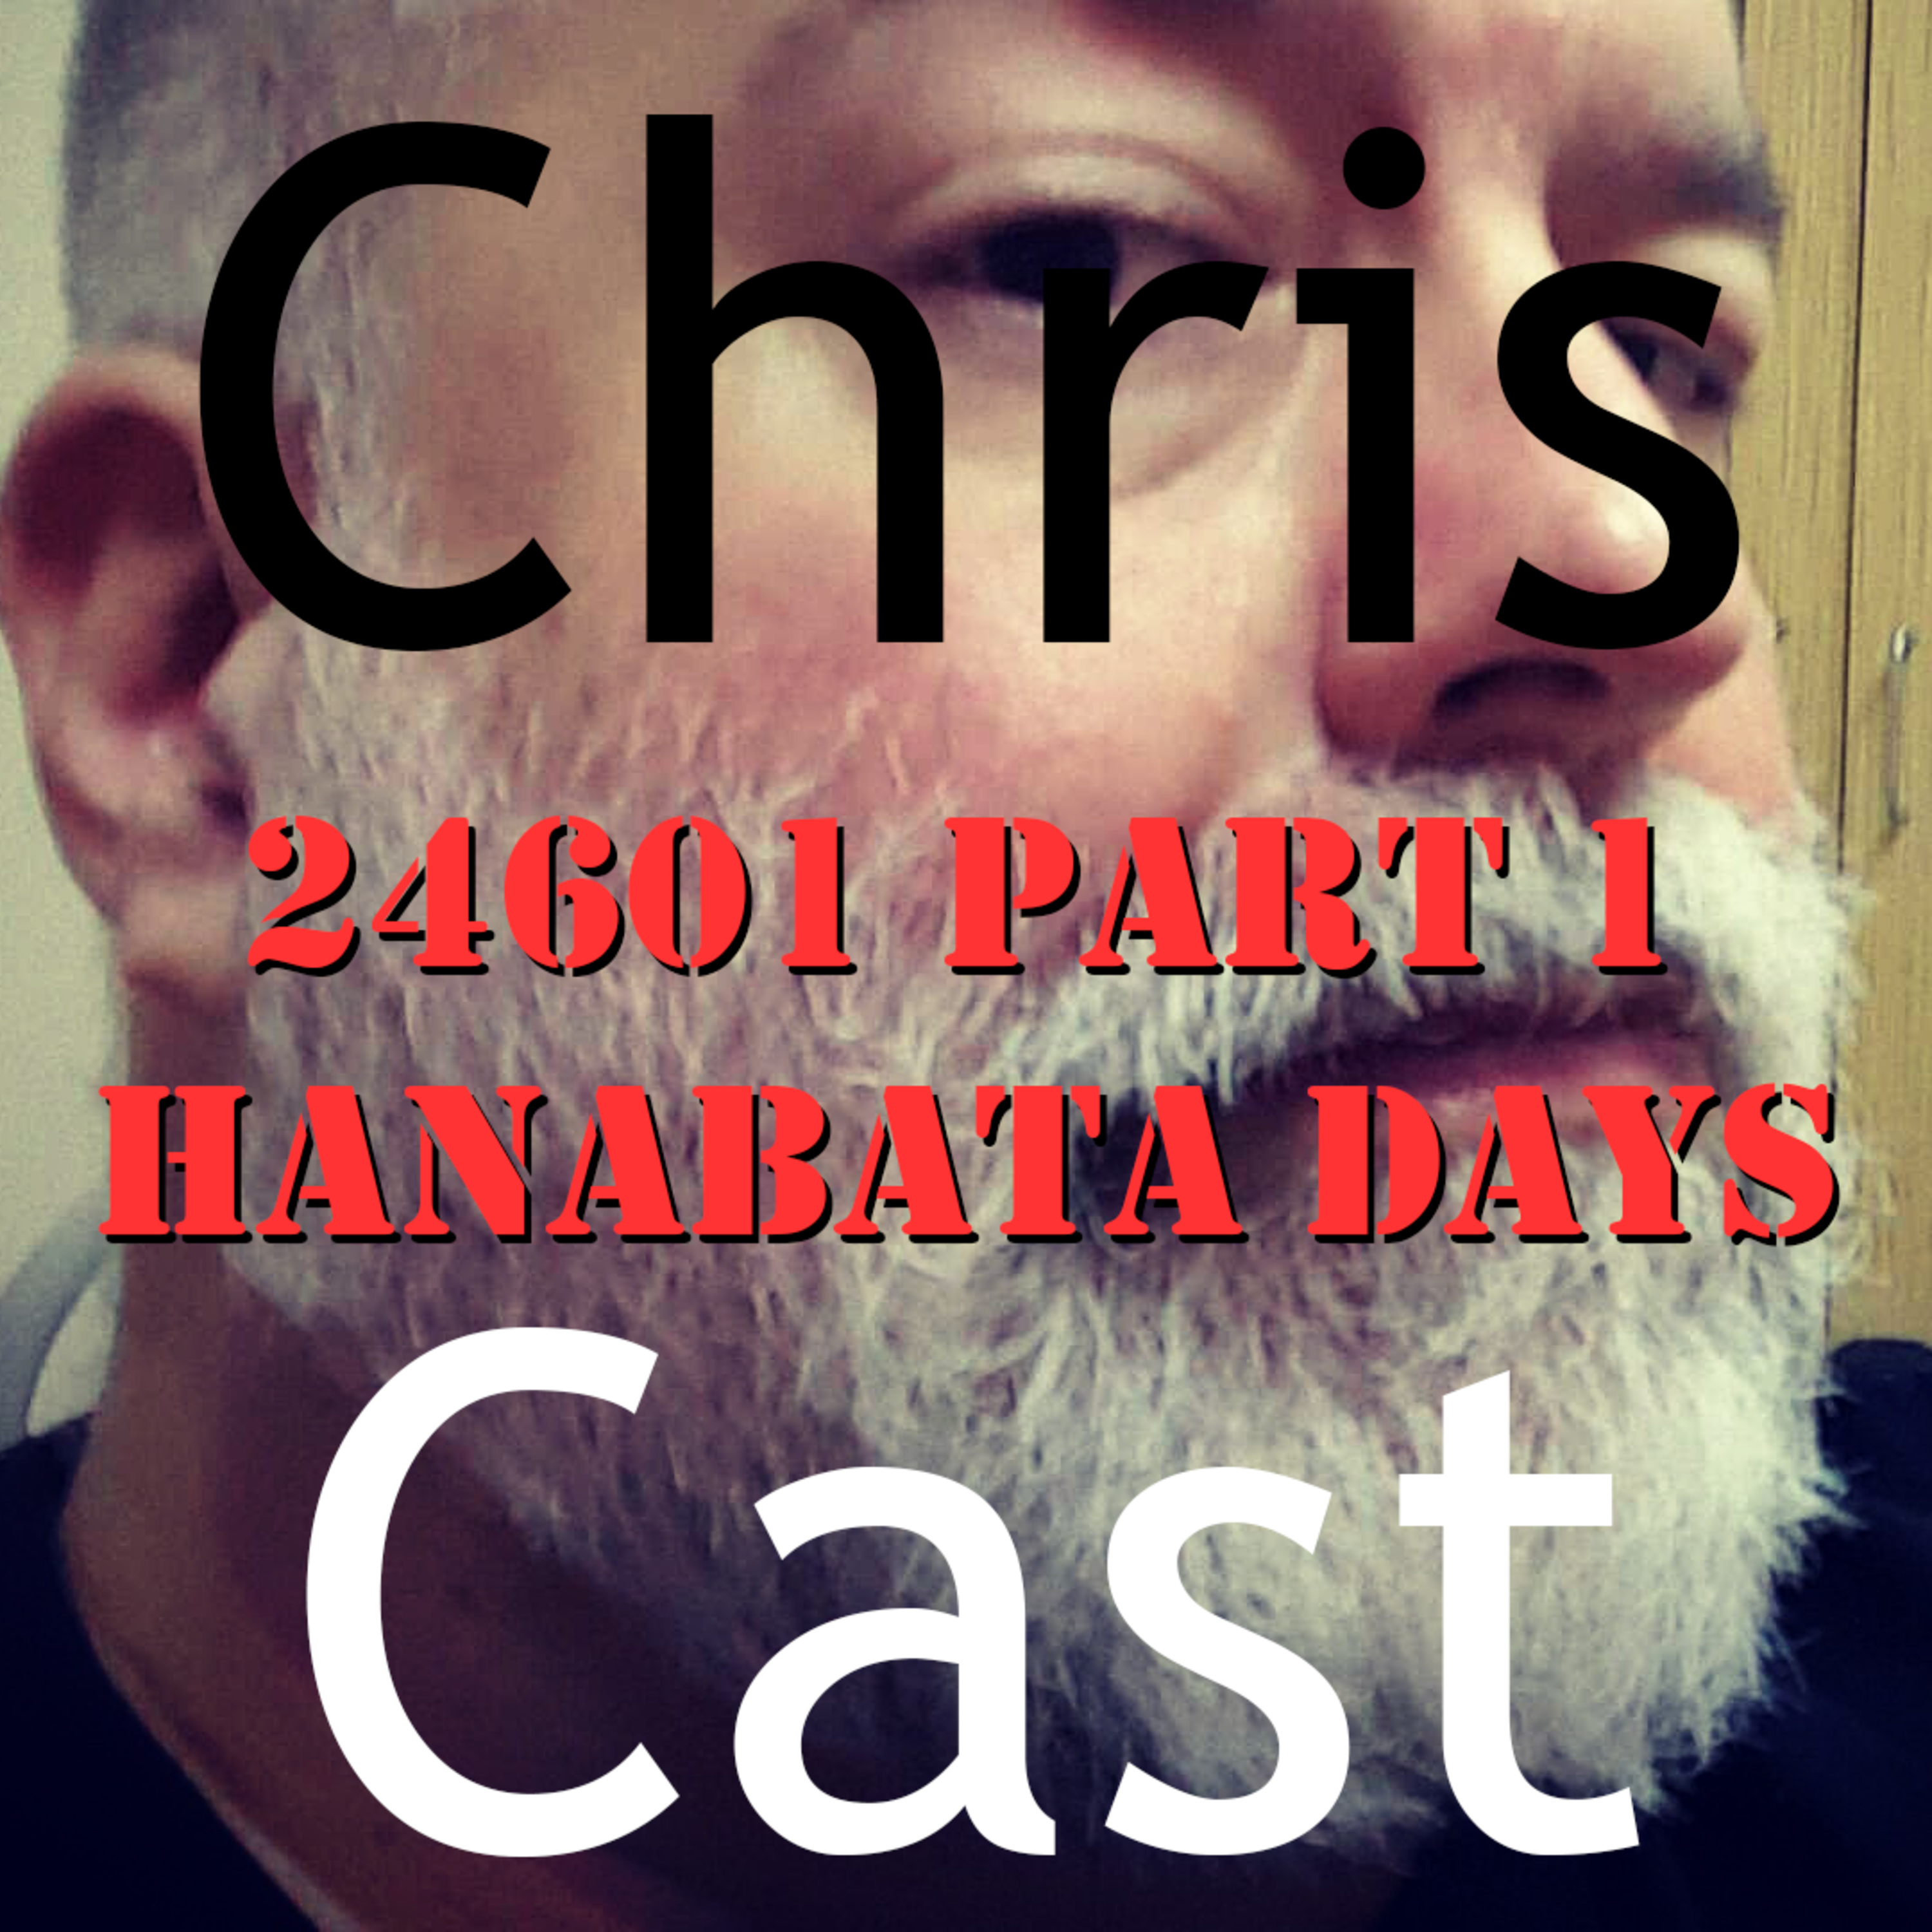 ChrisCast Episode 2: 24601 Part 1: Hanabata Days